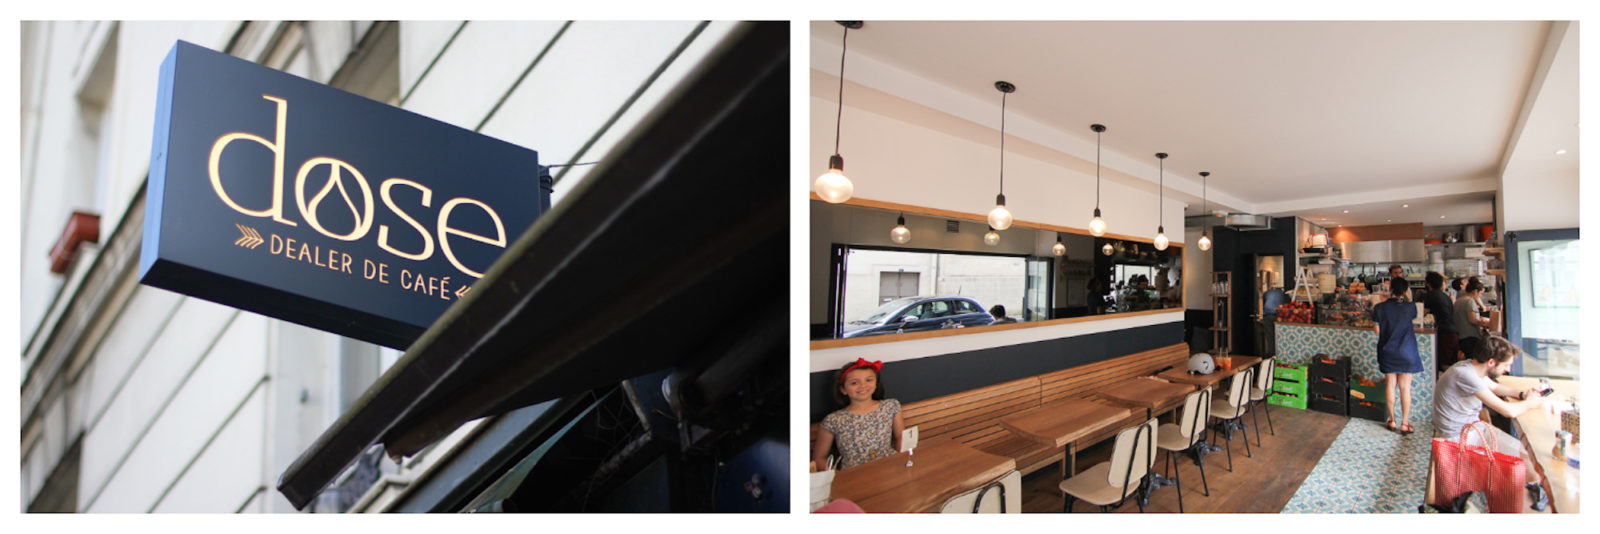 Favorite Paris coffee shop in Paris' Batignolles area, Dose Dealer Cafe (left). Inside Dose Paris coffee shop, it's light and bright with timber tables and Danish style chairs (right).